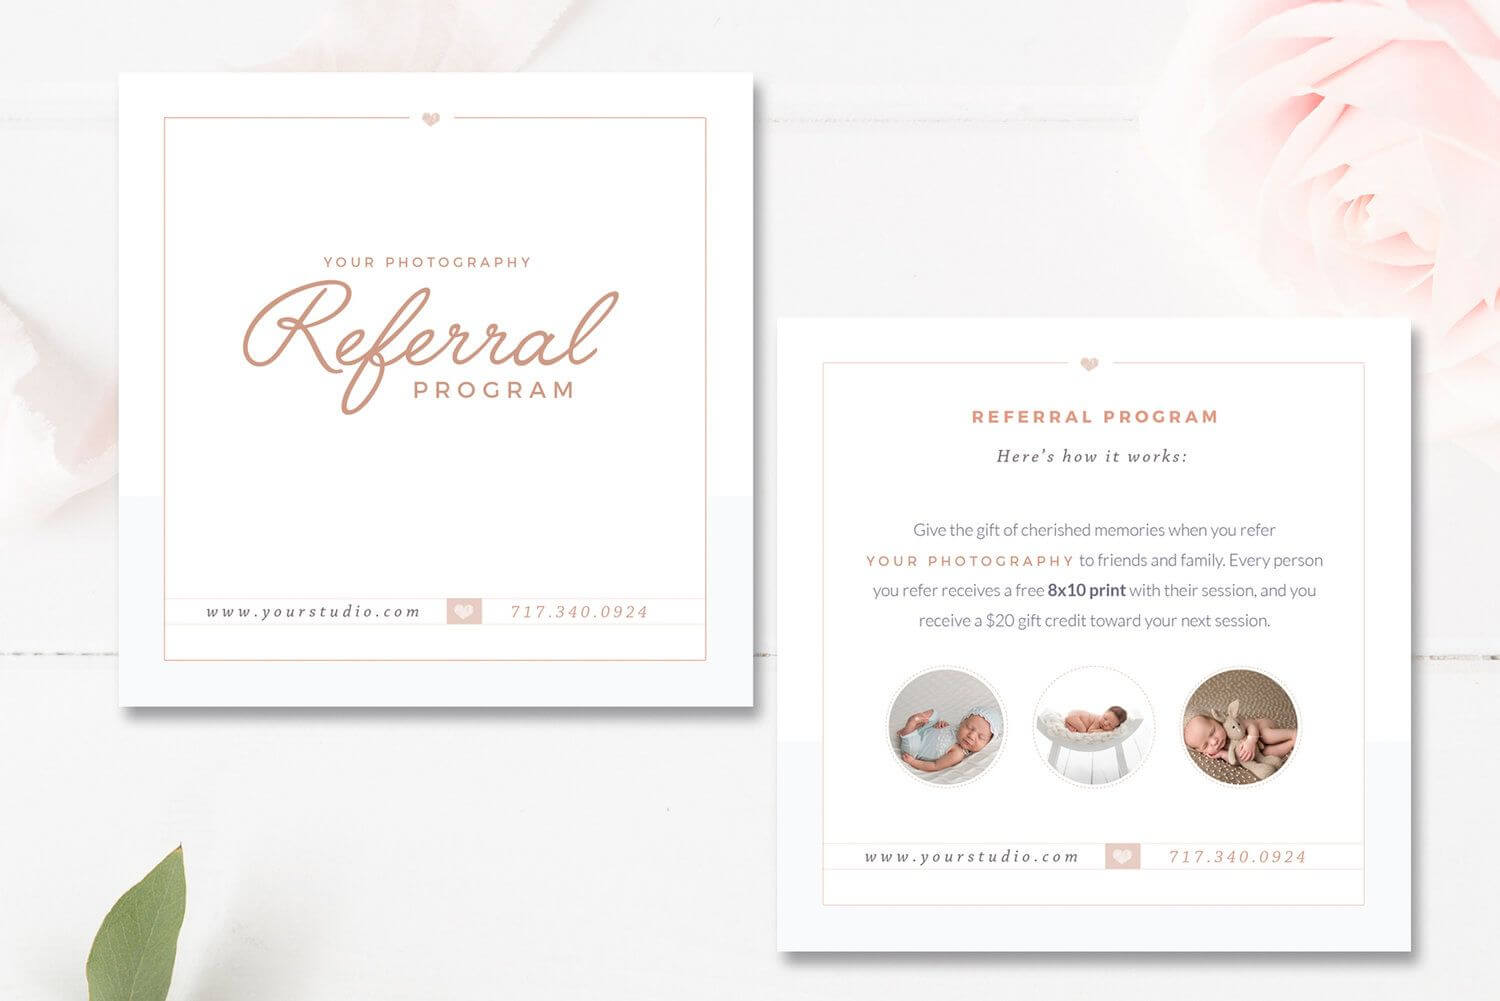 Photography Referral Card Templates, Referral Program Regarding Referral Card Template Free